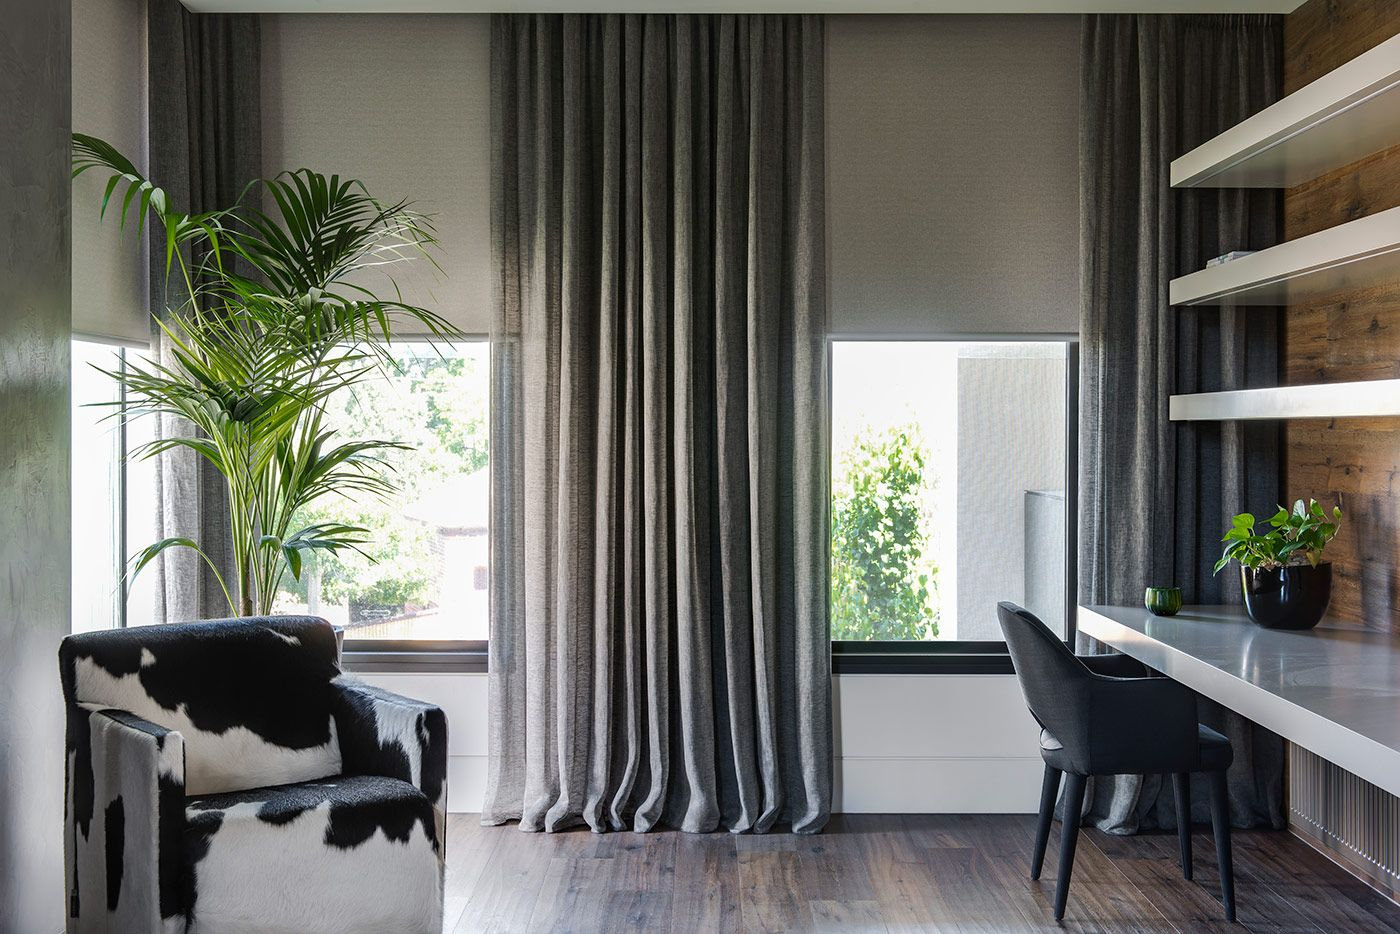 Motorised Roller Blinds In Baltic Blockout Fabric Paired